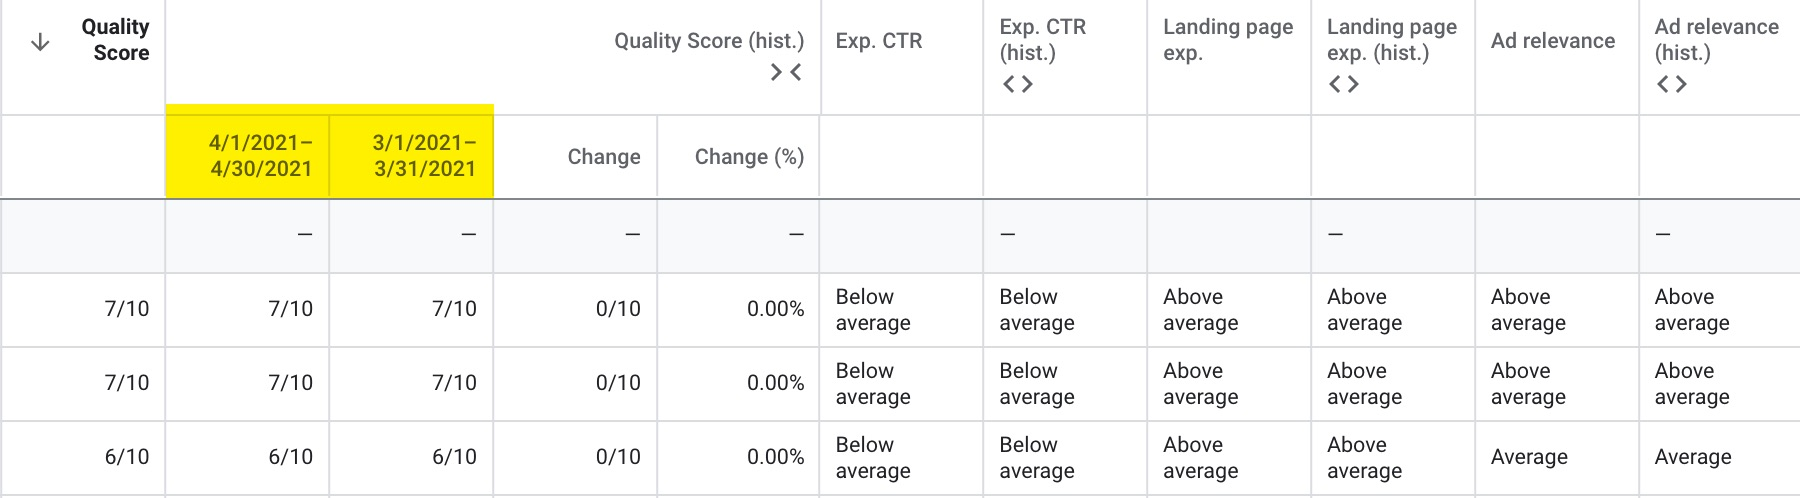 Google Ads quality score time periods.